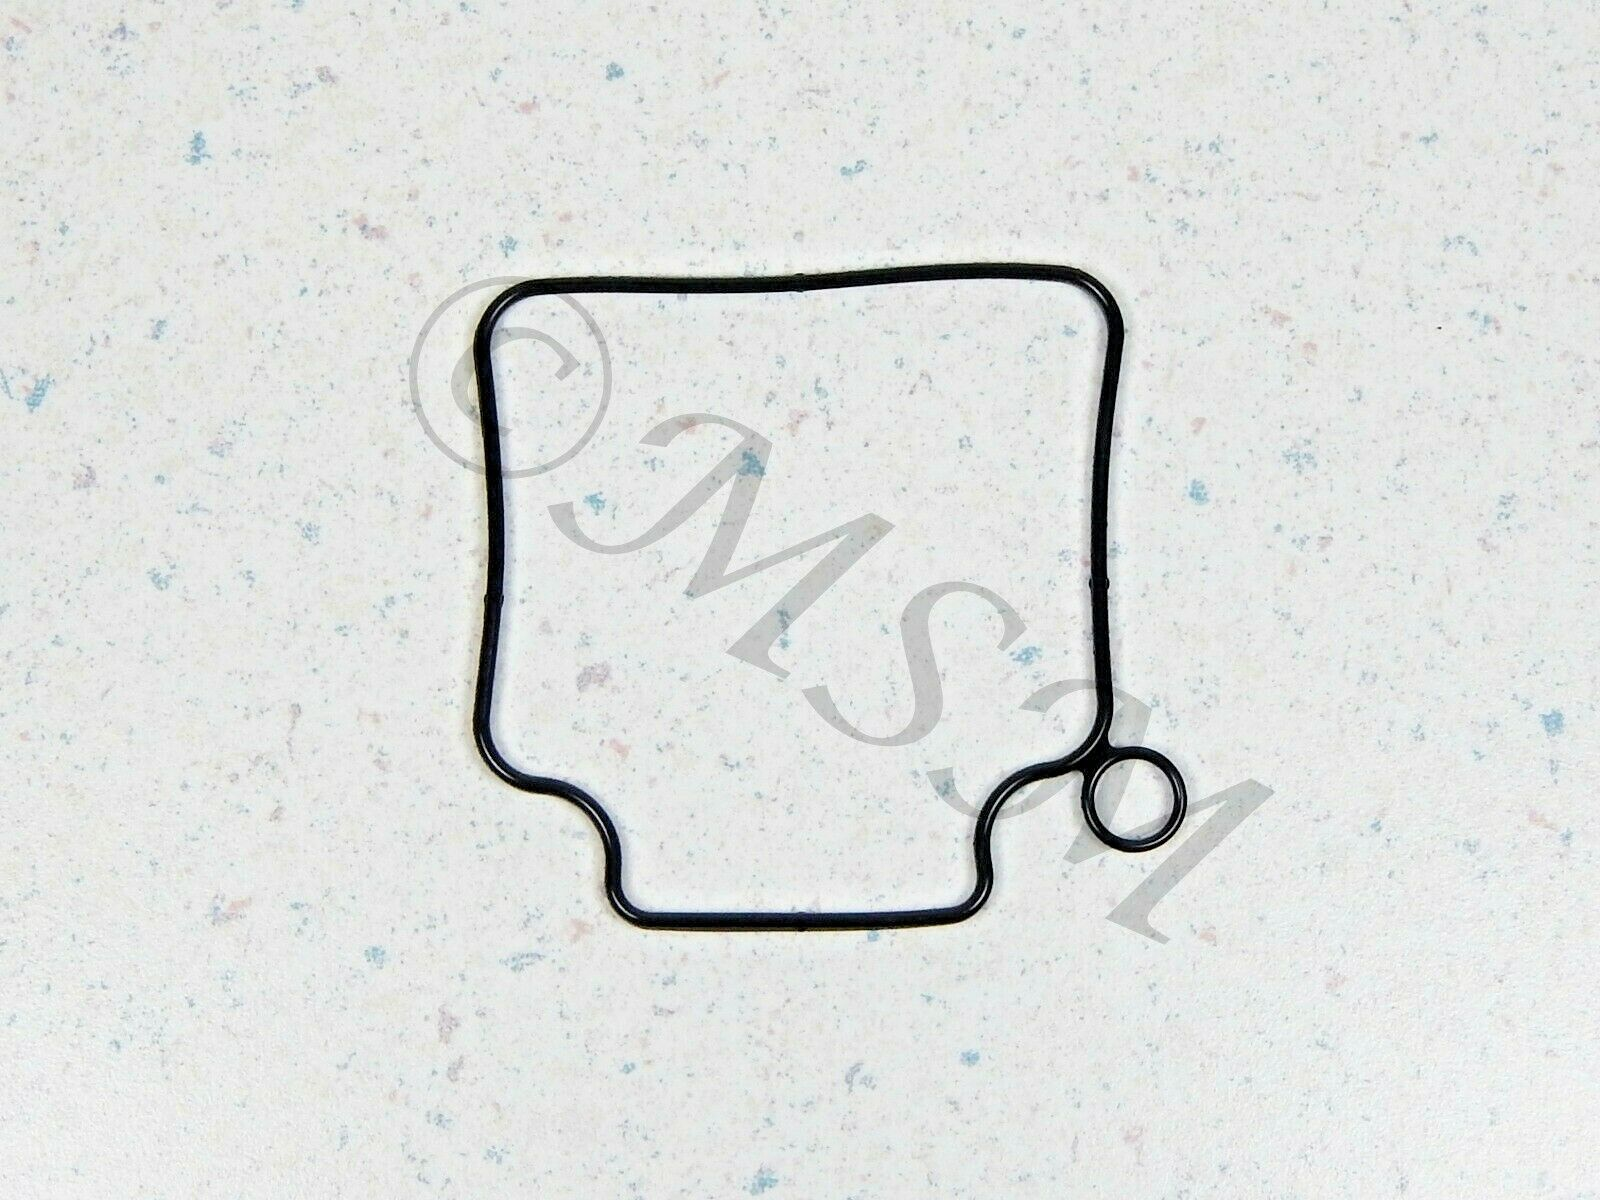 HONDA NEW K&L Carb Carburetor Float Bowl Chamber Gasket O